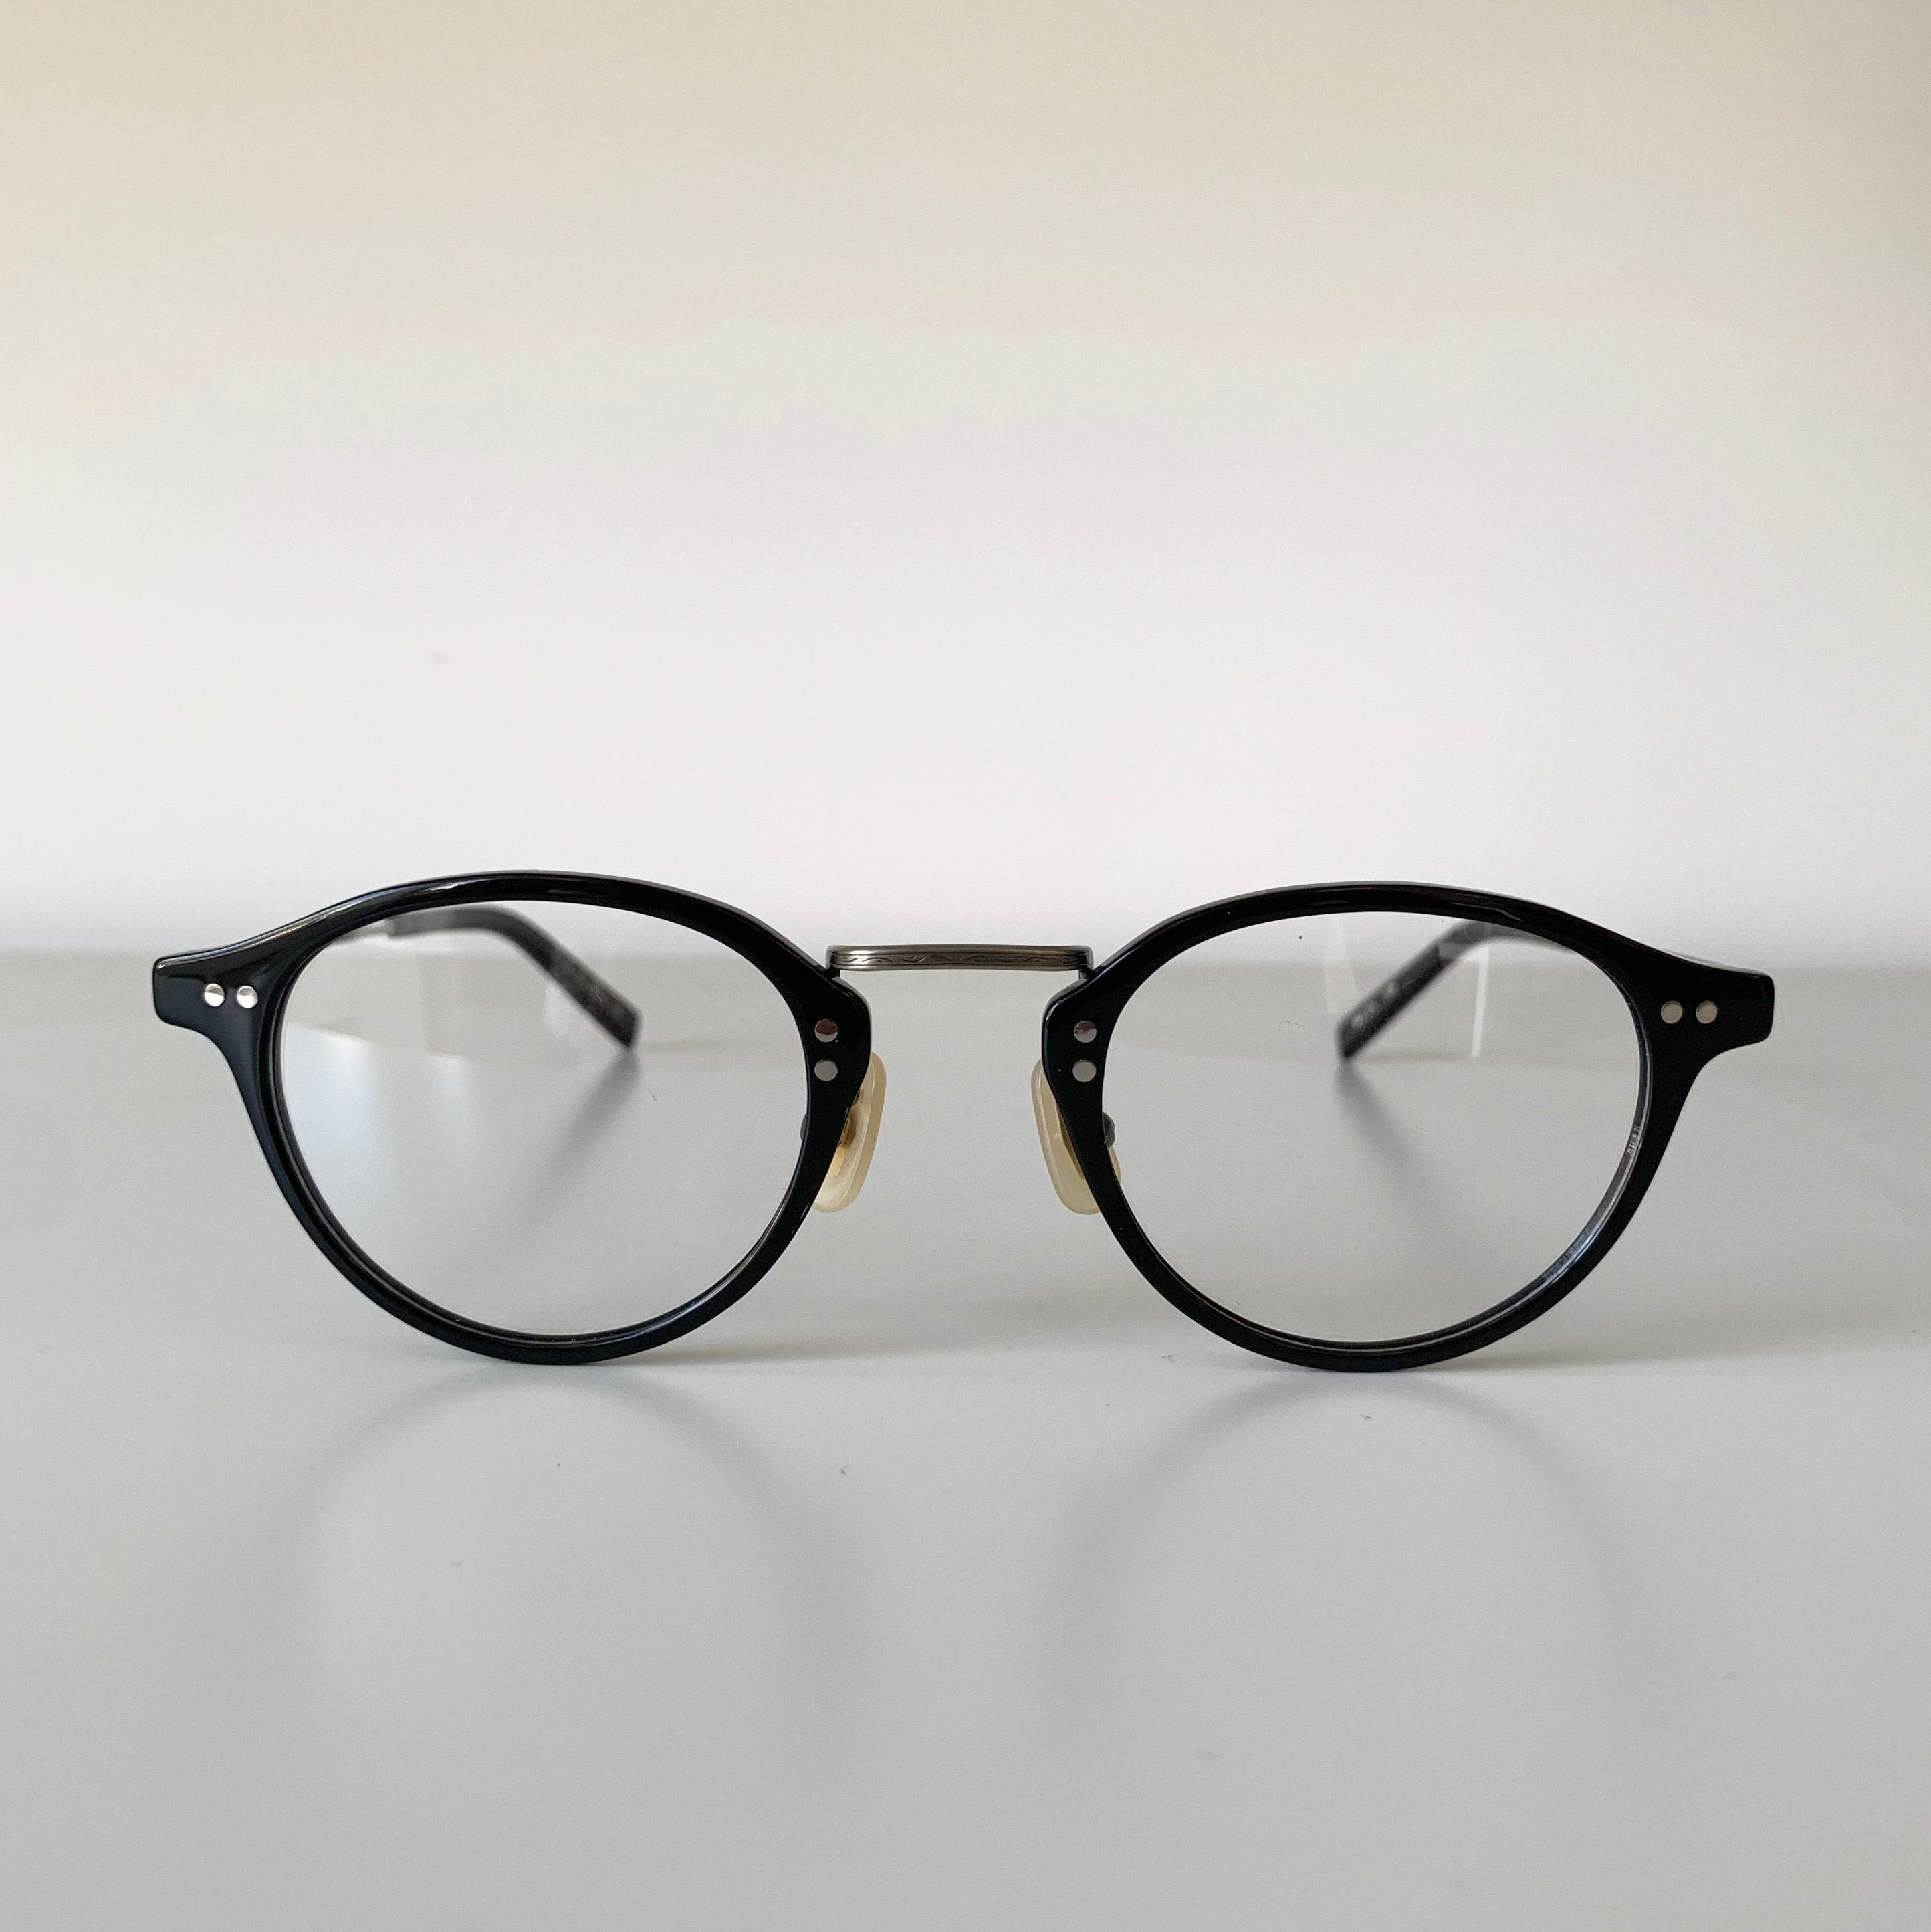 KV-66 in Black  - Biodegradable Cellulose Acetate and Titanium